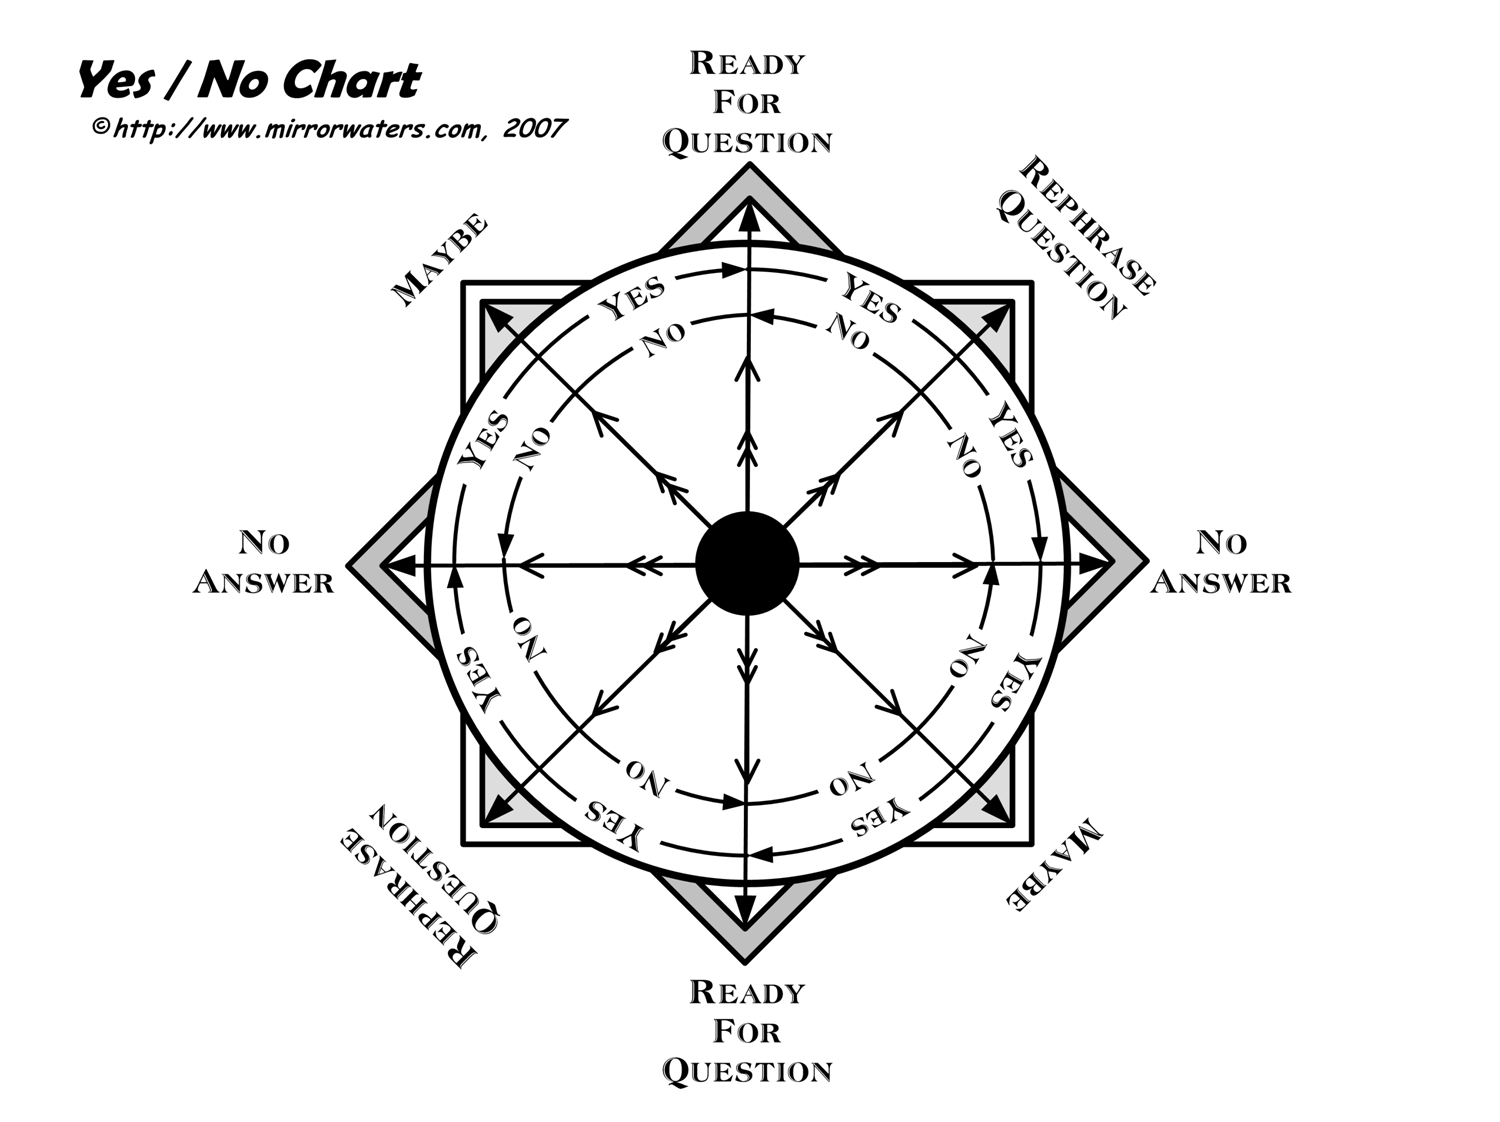 image about Free Printable Pendulum Charts titled Sure / No Dowsing Chart Mirrorwaters